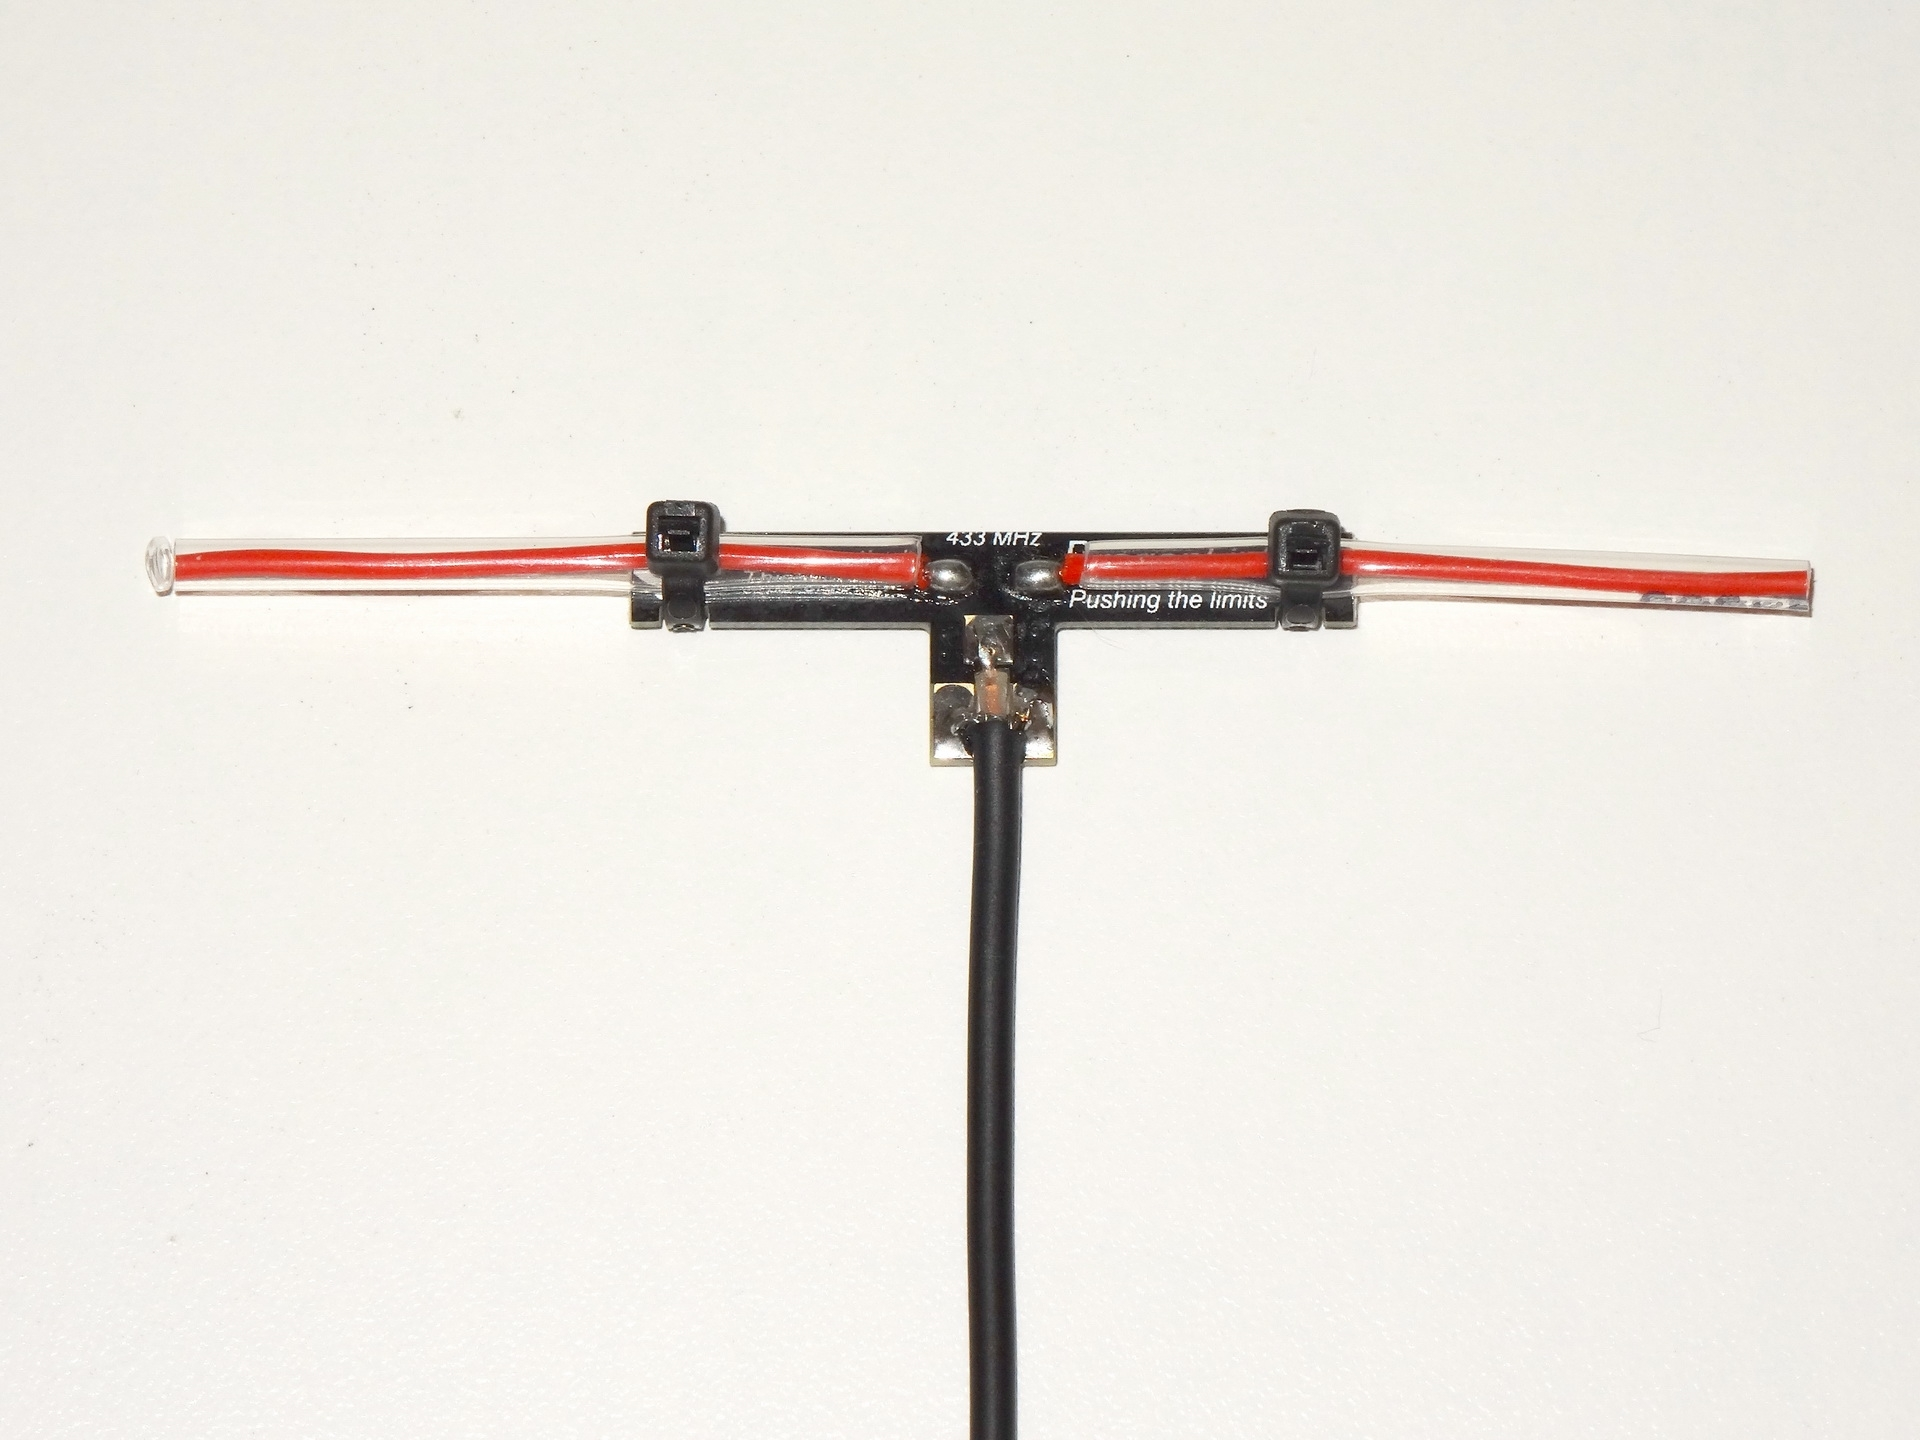 Picture of 1.2 / 1.3 GHZ Video Transmitter Antenna -  36 Inch ( 90 CM ) Super Flexible Coax Extension